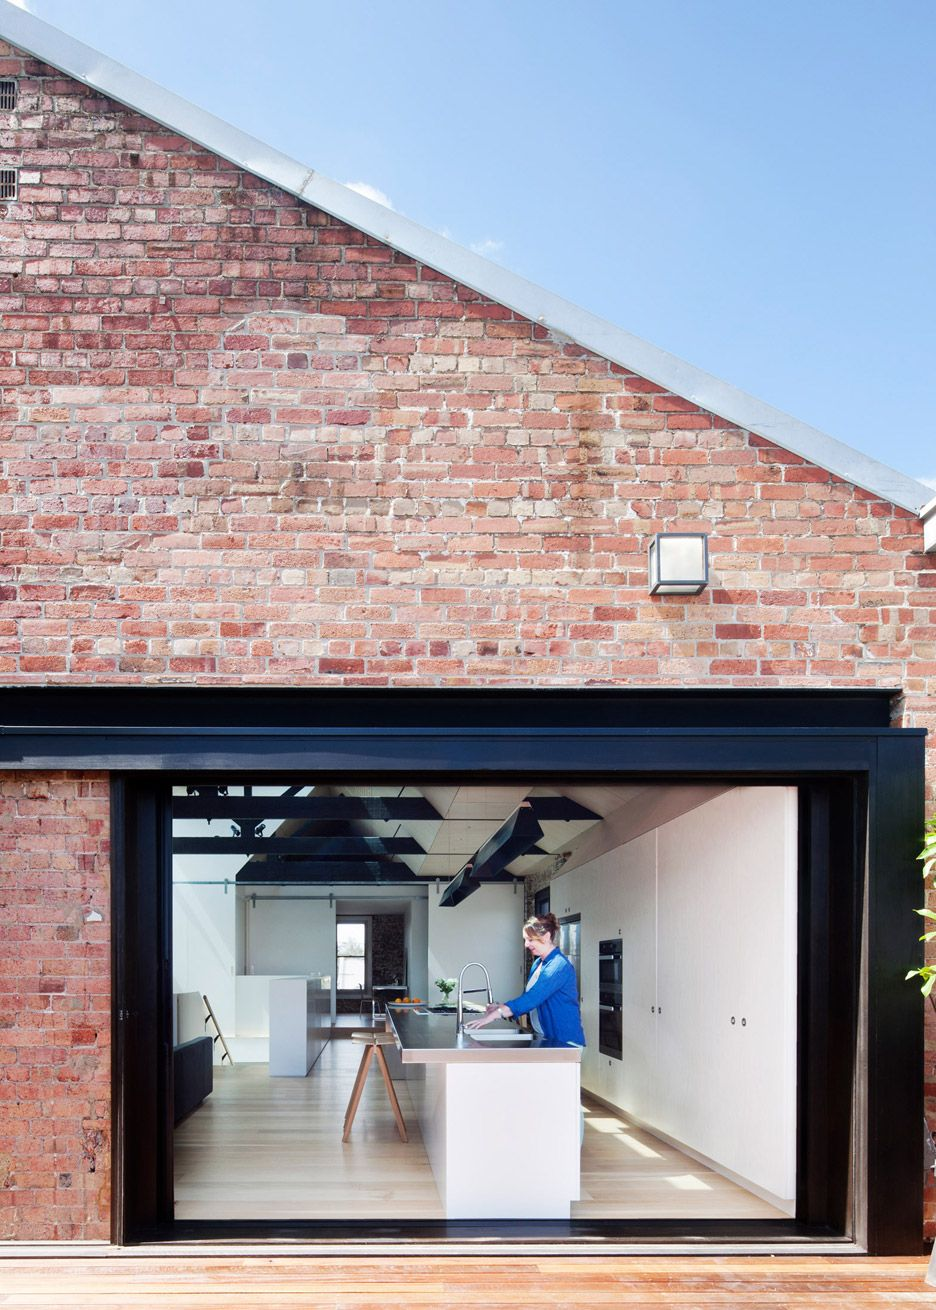 Bagno Design Redbrick Mill Andrew Simpson Architects Has Converted A Red Brick Warehouse In